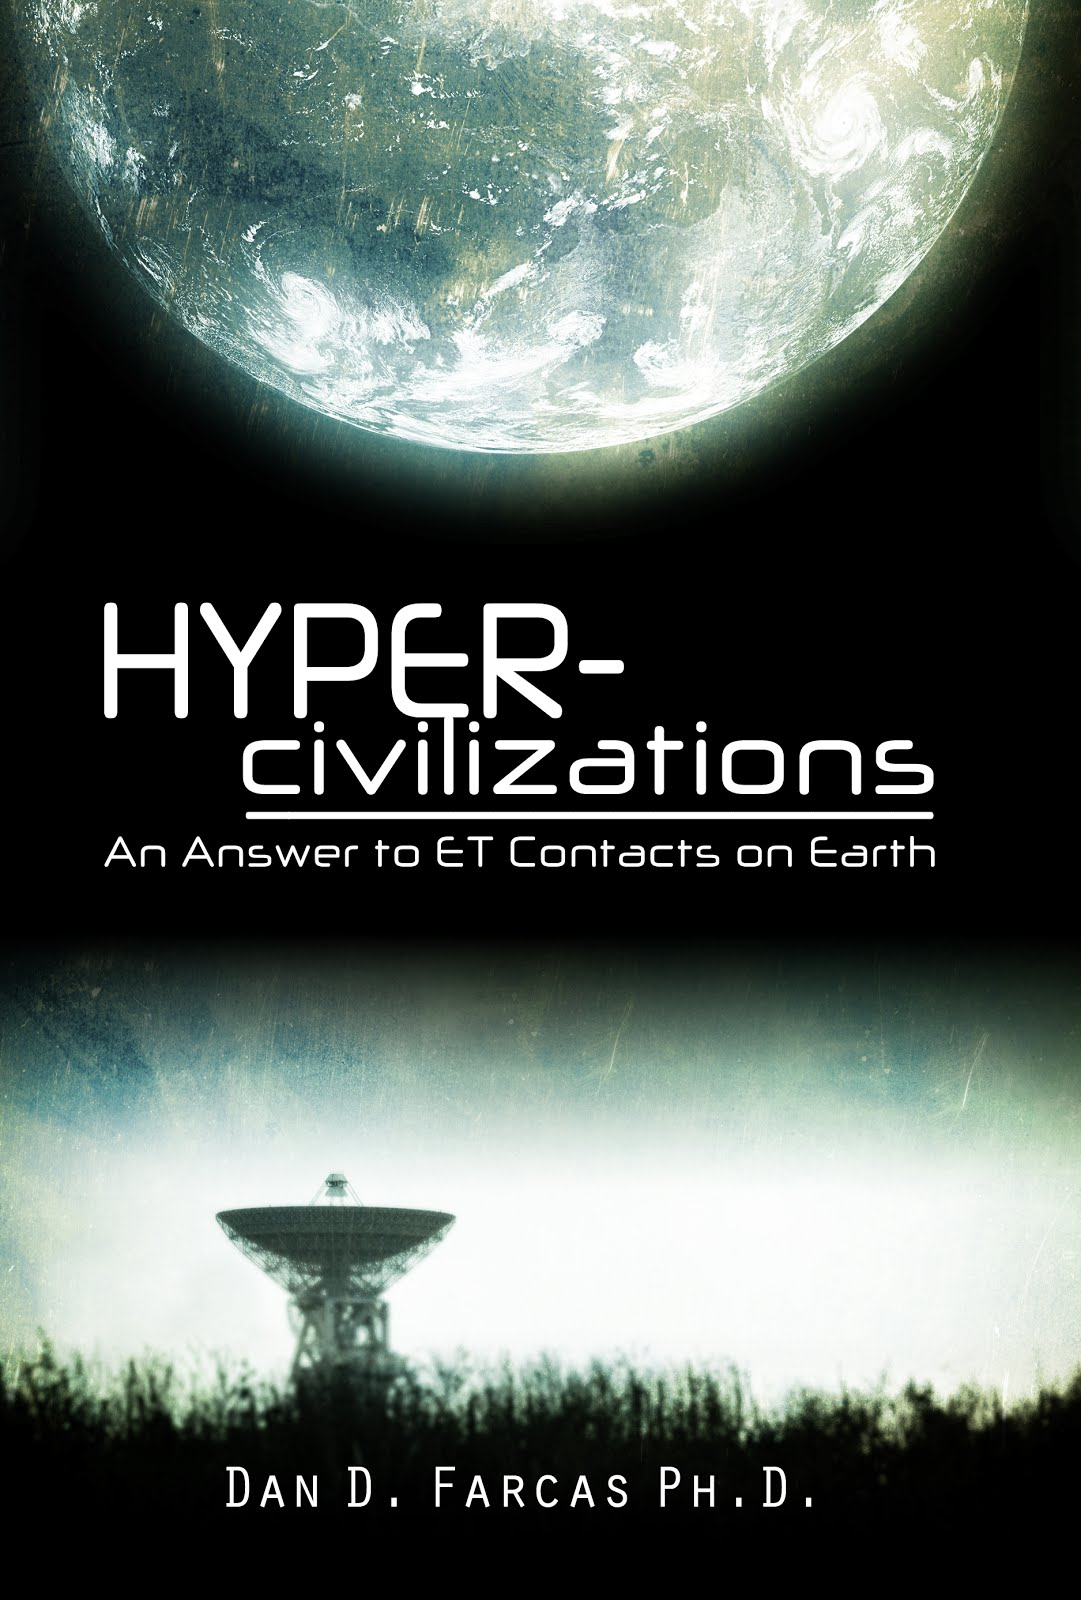 Hyper-civilizations : An Answer to ET Contacts on Earth